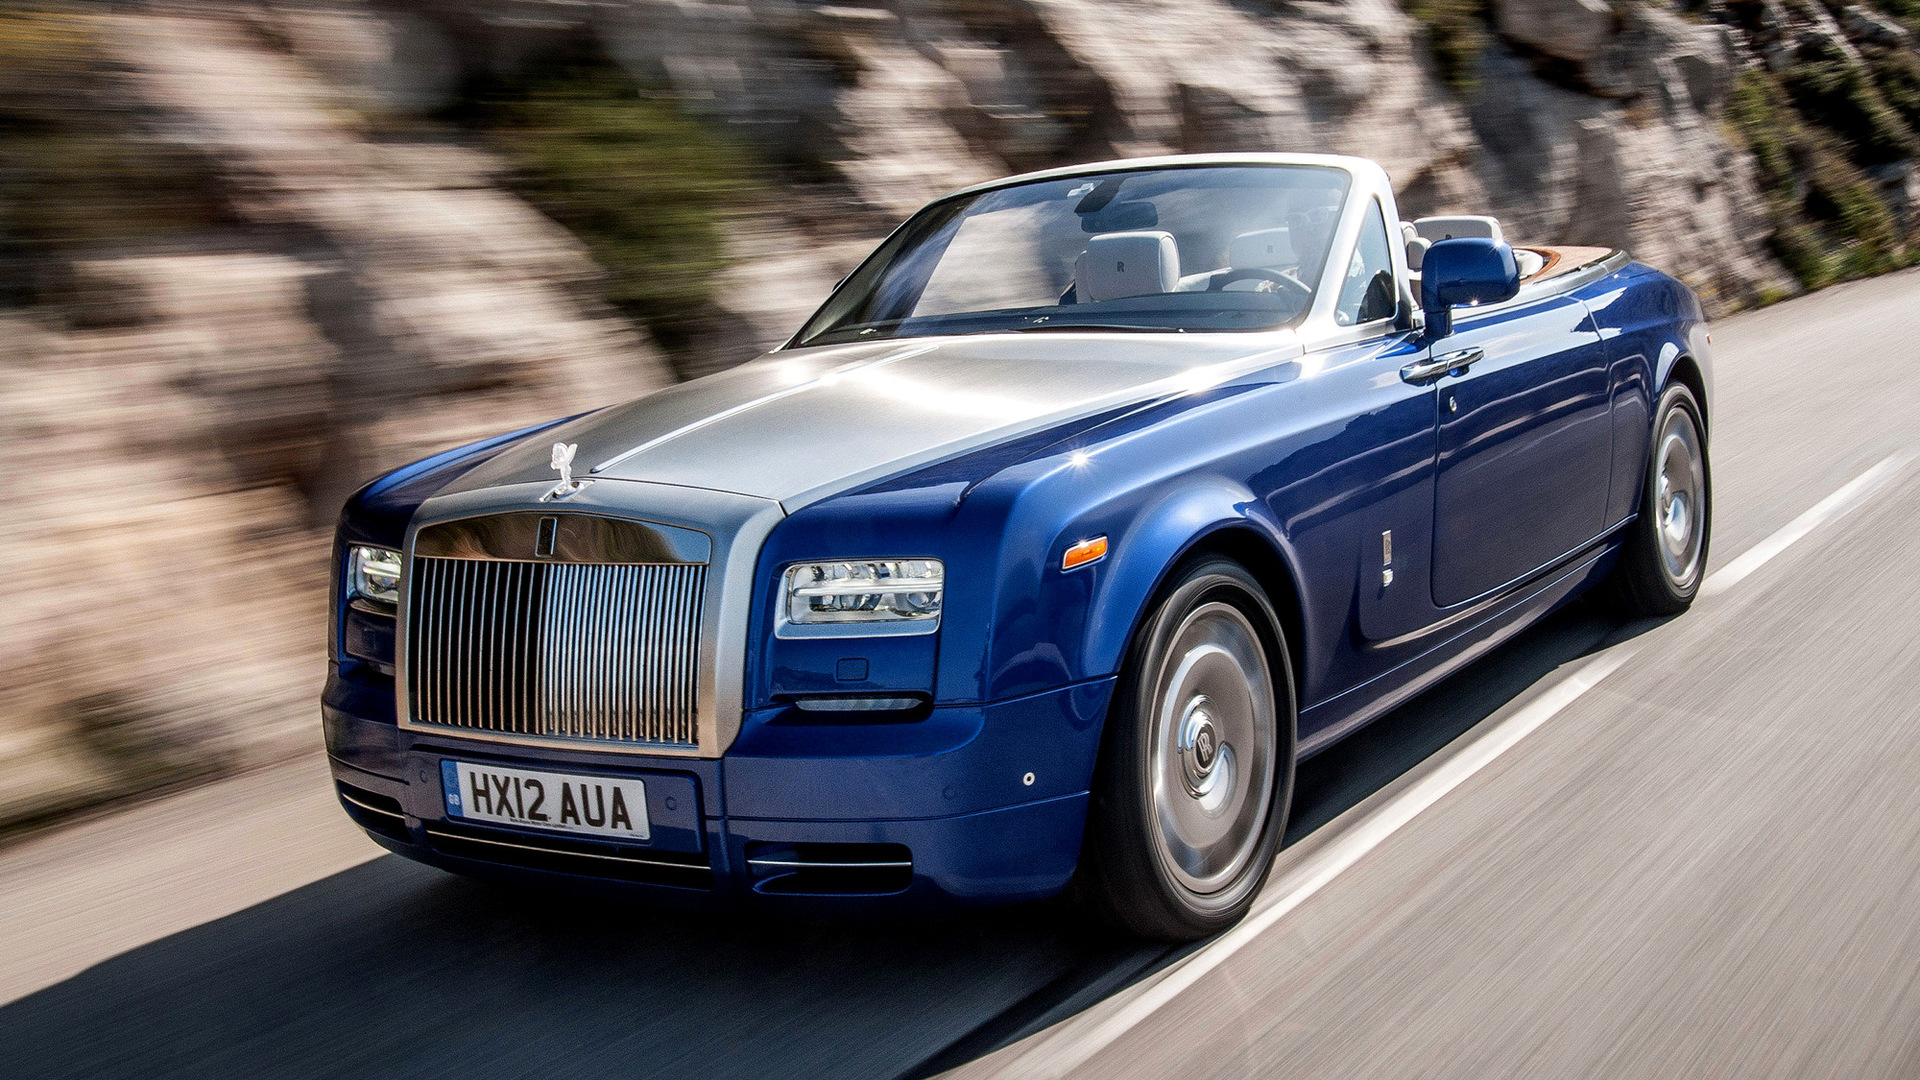 Rolls-Royce Phantom Drophead Coupe (2012) Wallpapers and HD Images - Car Pixel